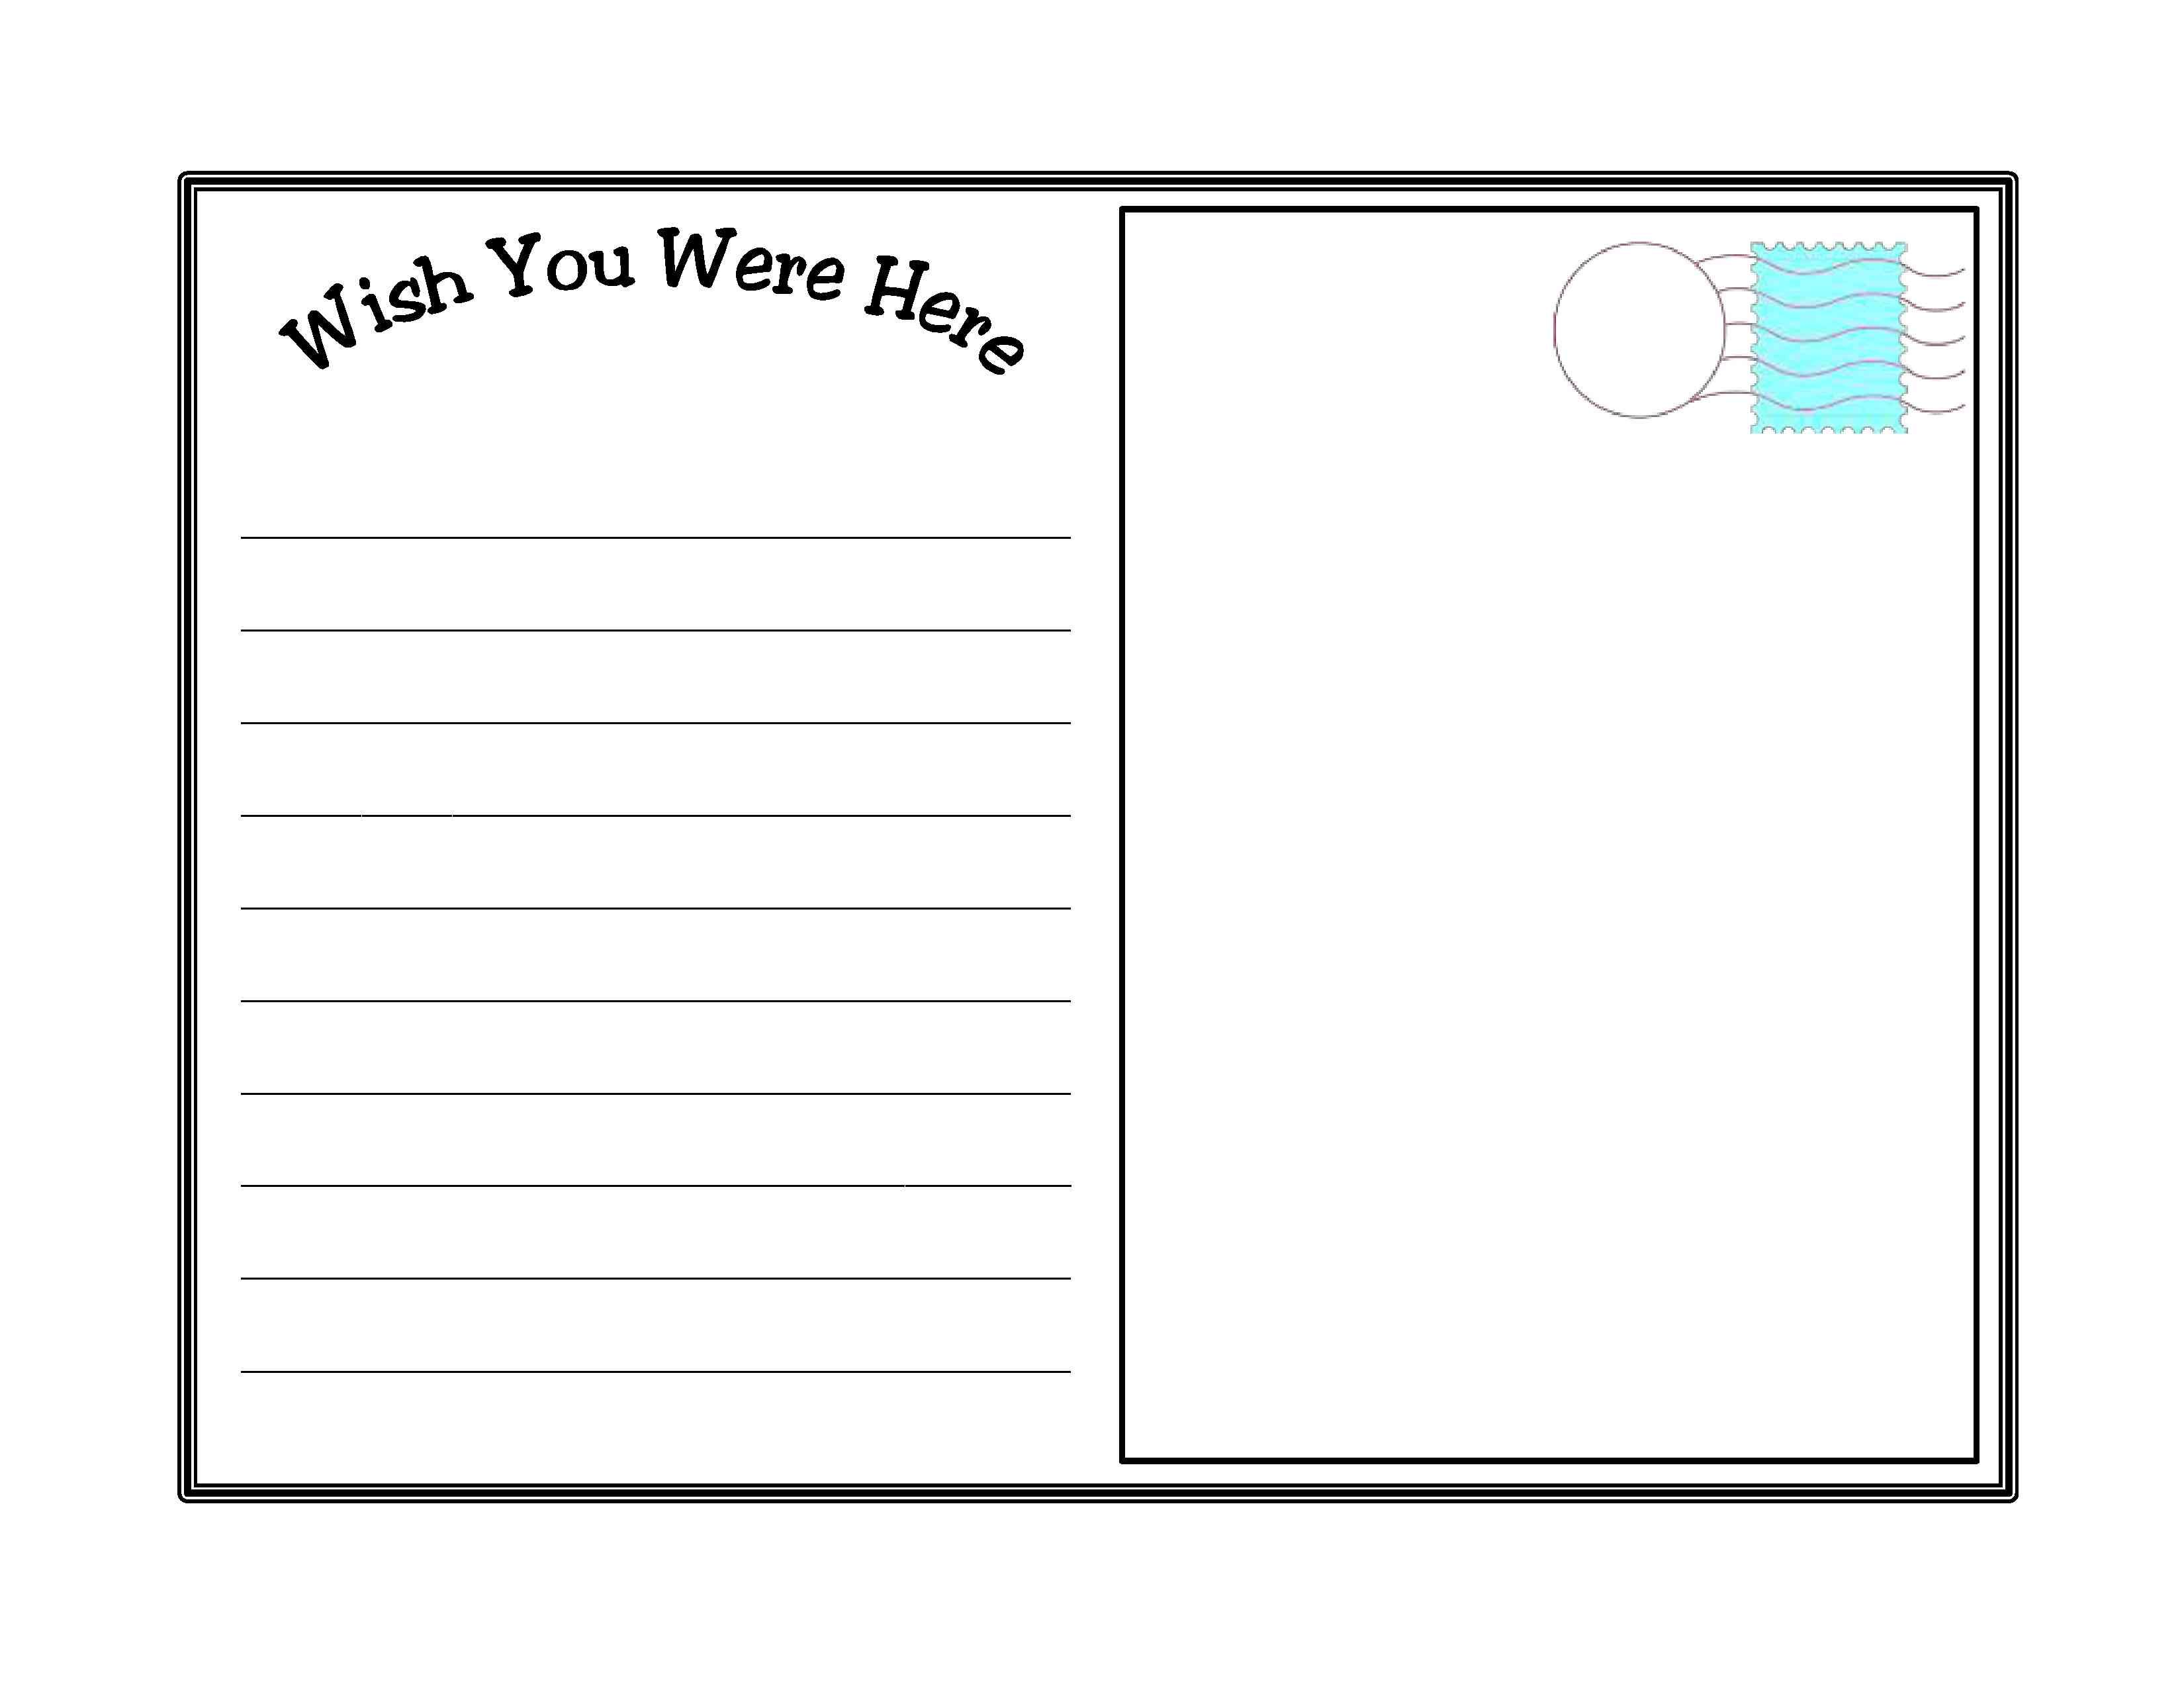 Bring Families Together With A Single Book Part 2 The Writing Program Scholastic Com Printable Postcards Postcard Template Postcard Template Free